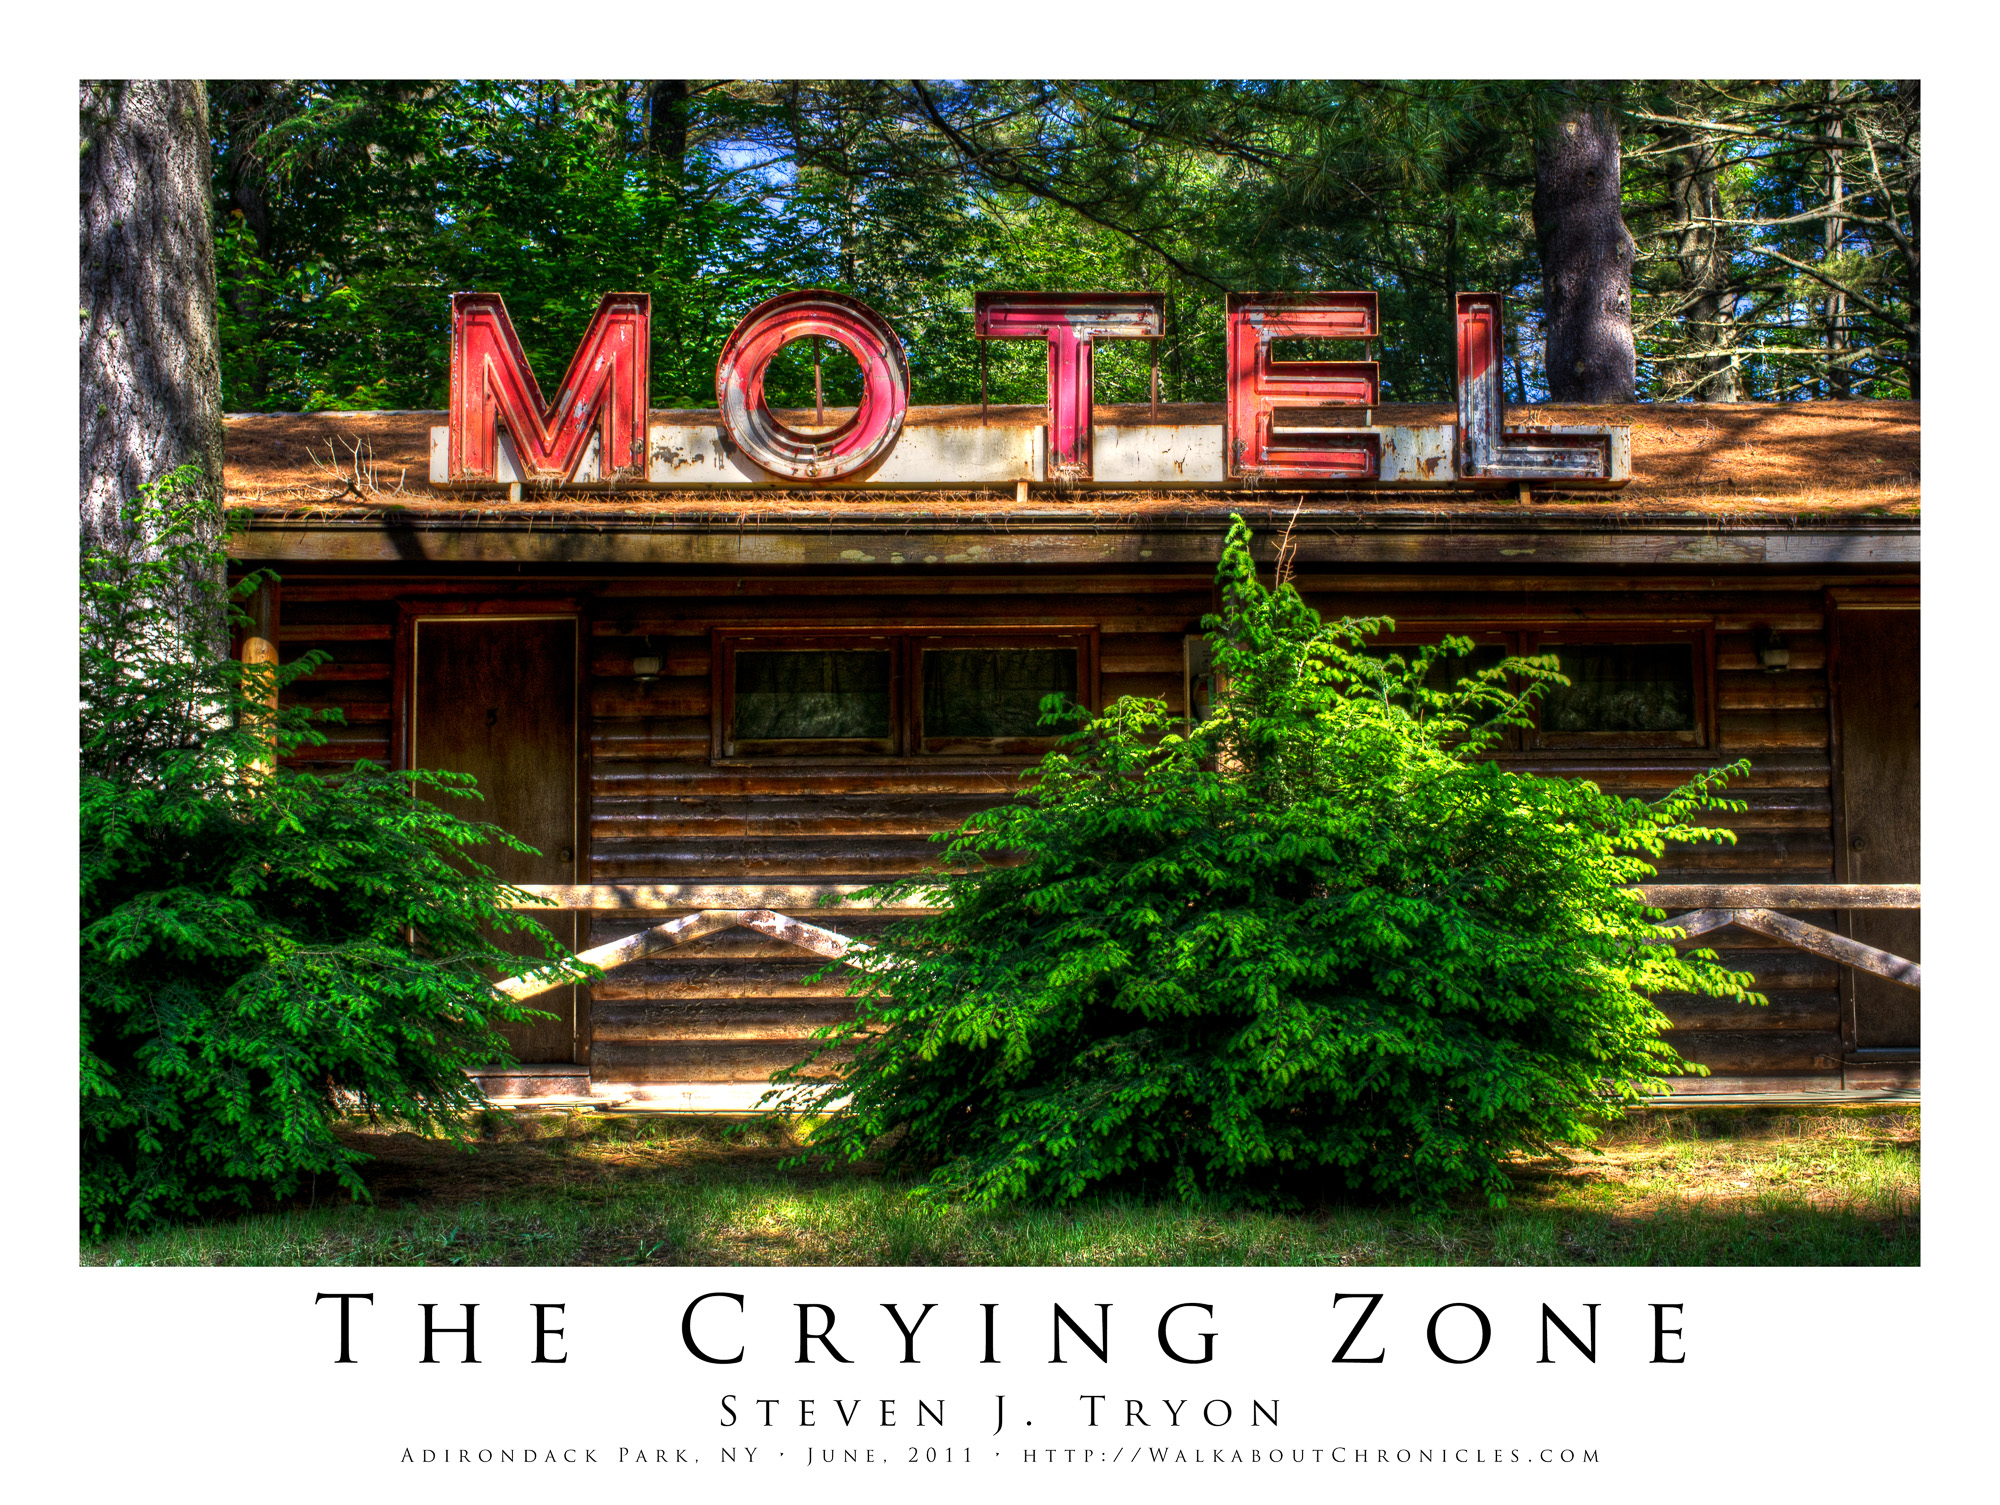 The Crying Zone